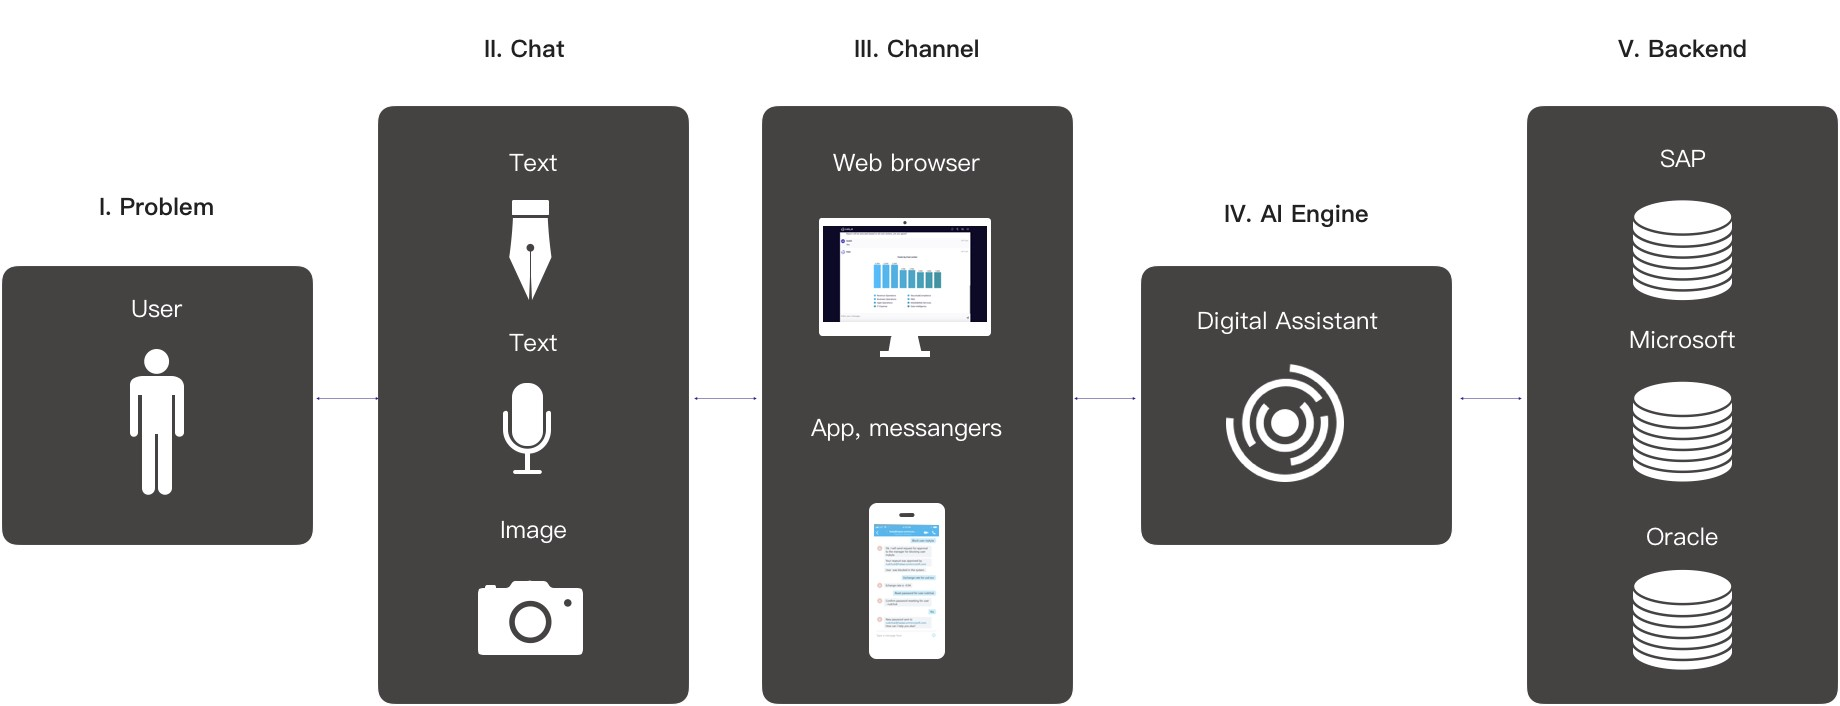 Graphical digital assistant integrations diagram